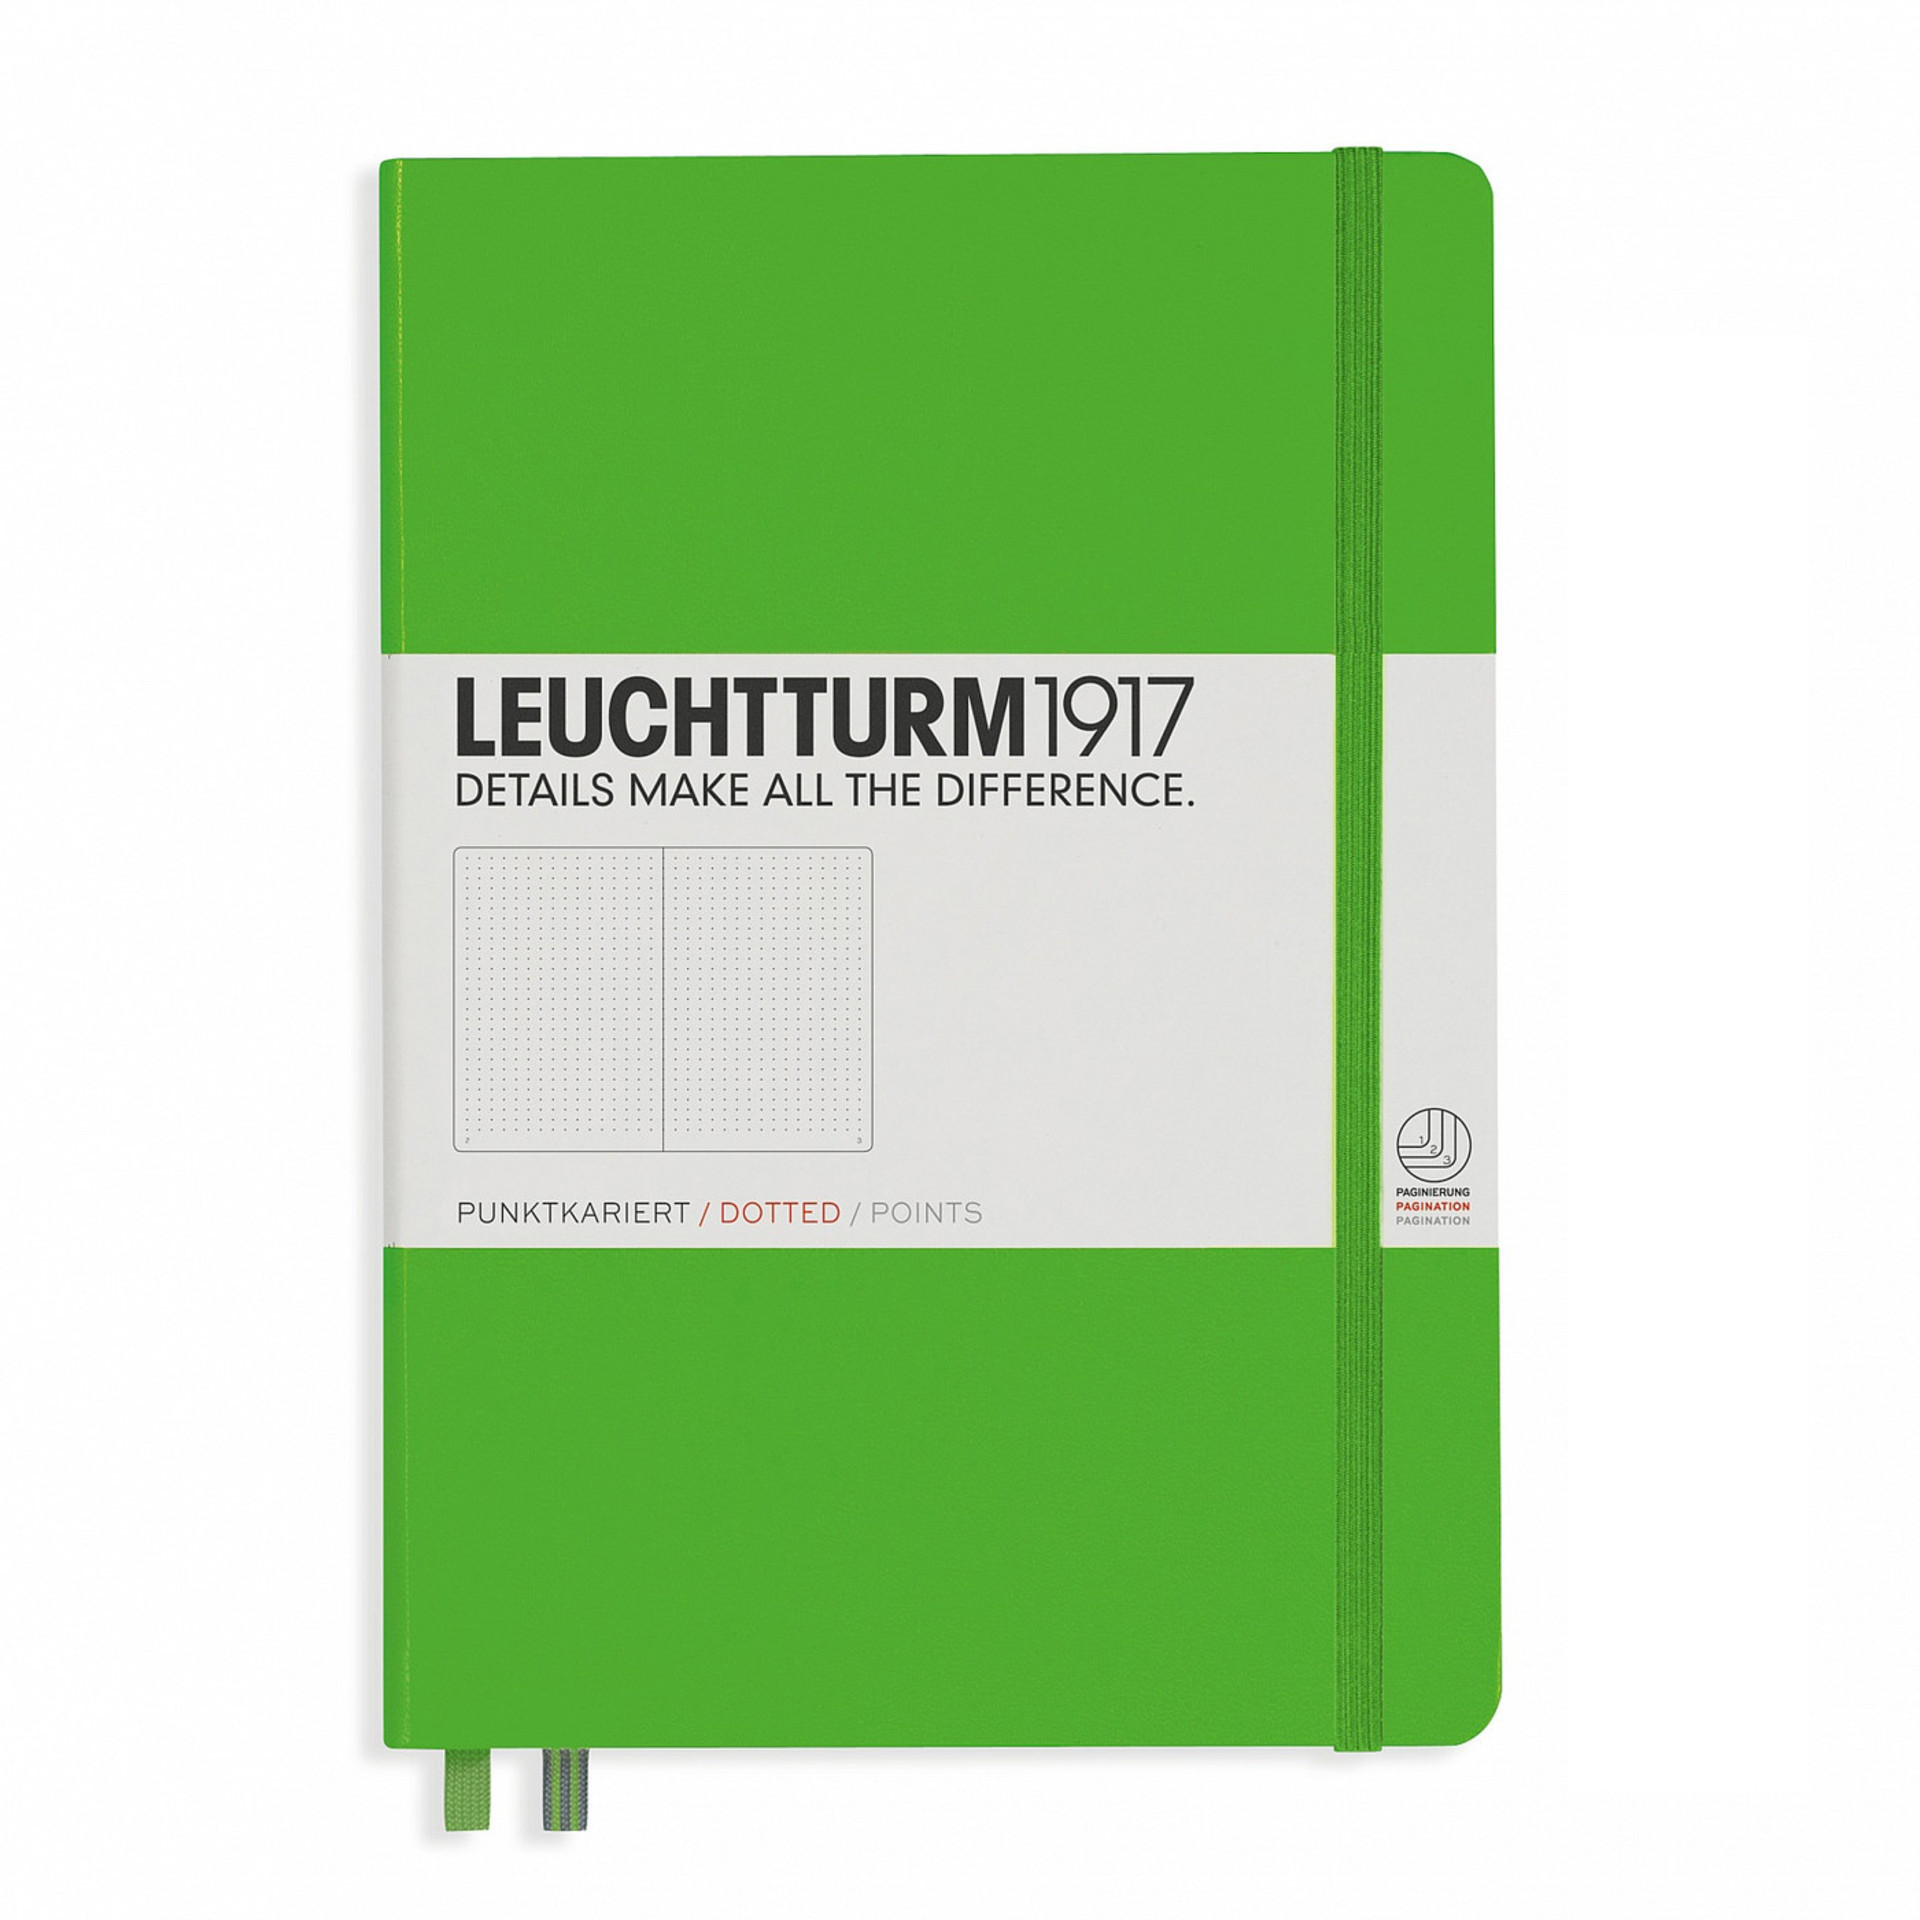 Leuchtturm 1917 A5 Medium Hardcover Notebook – Fresh Green – Dotted